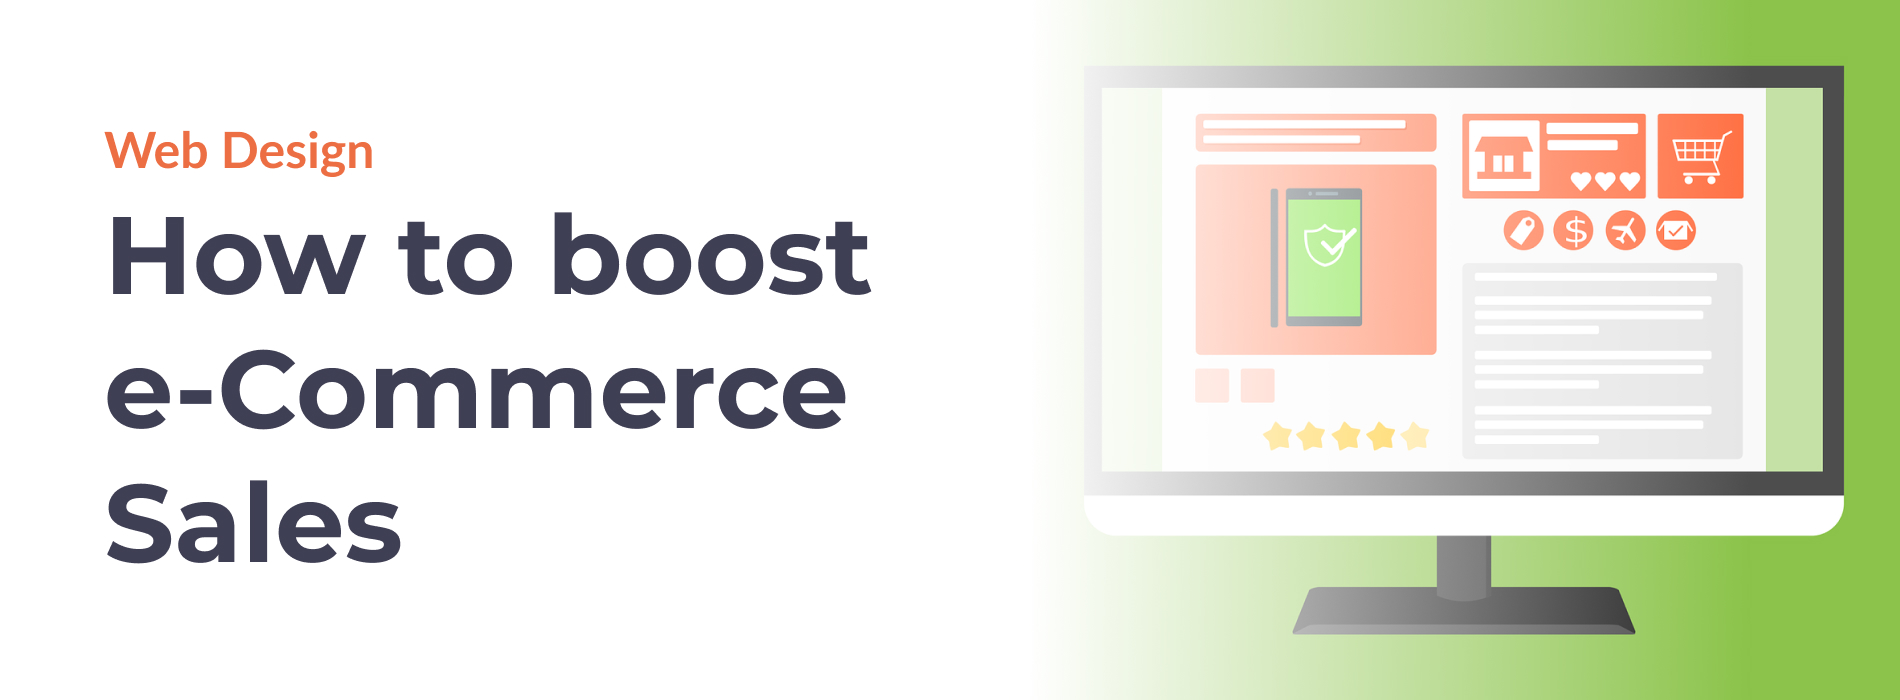 E-commerce Web Design heading - how to boost your e-commerce sales